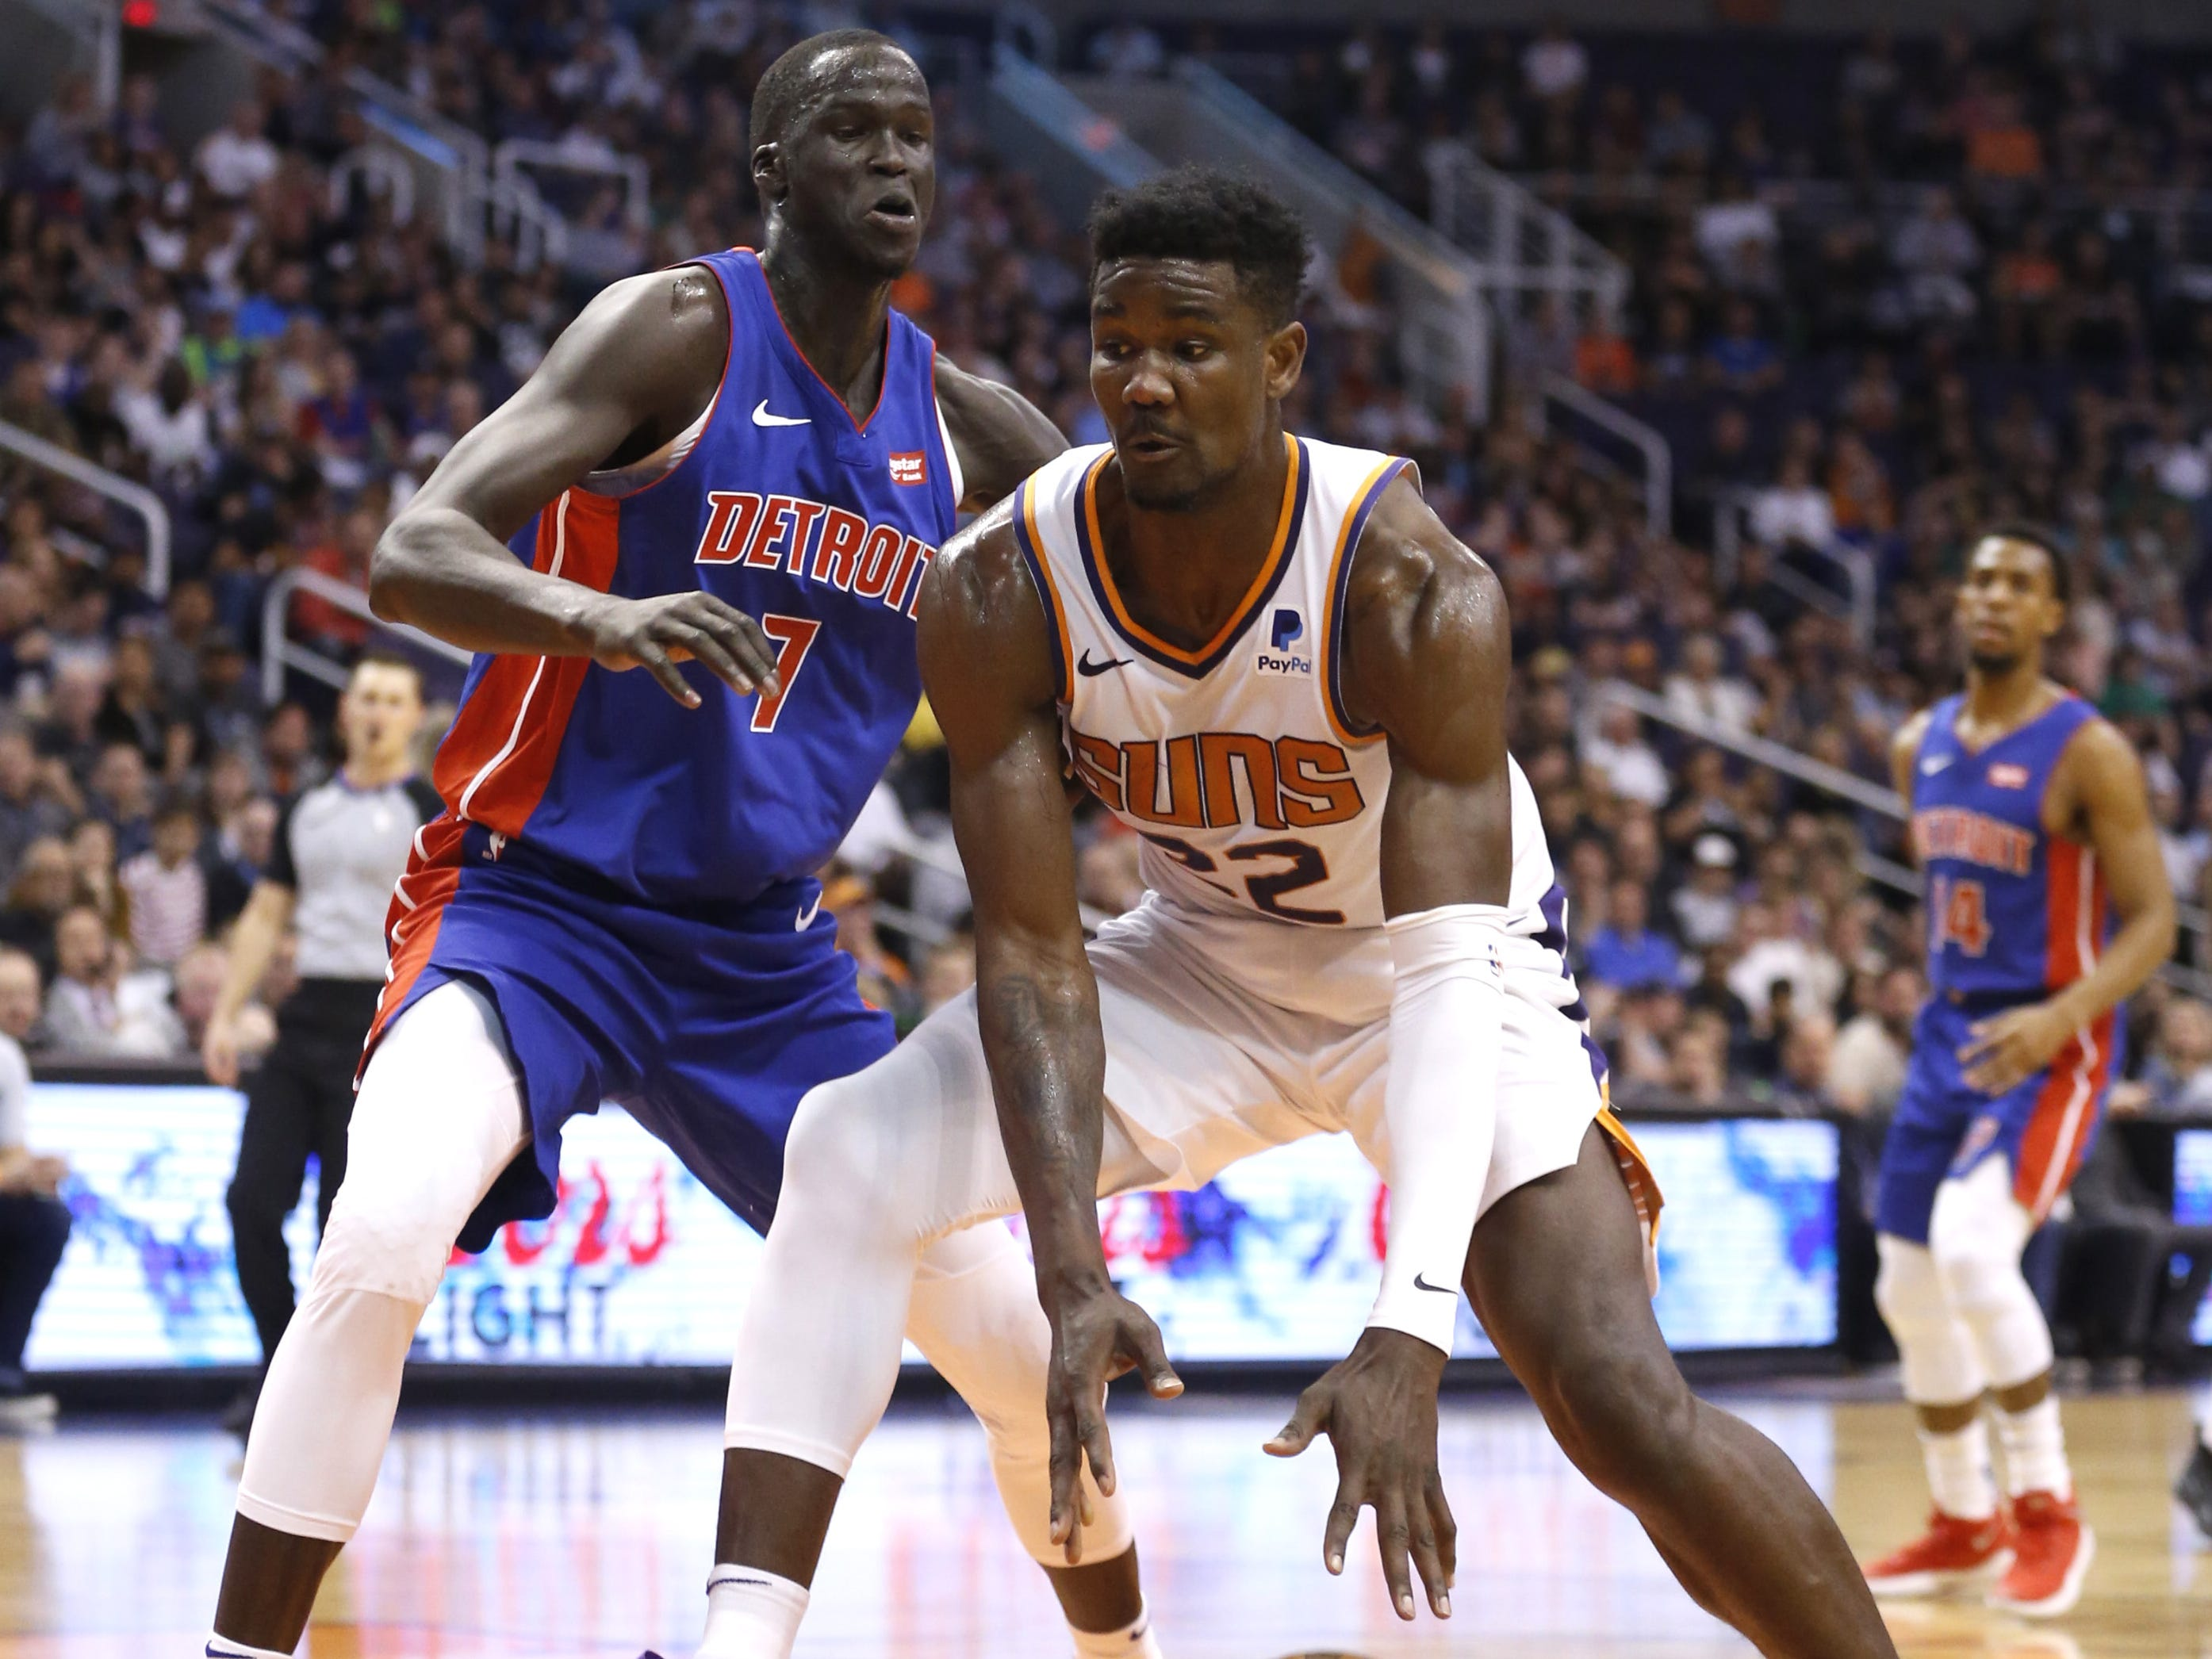 Suns' Deandre Ayton (22) dribbles into the defense of Pistons' Then Maker (7) during the first half at the Talking Stick Resort Arena in Phoenix, Ariz. on March 21, 2019.